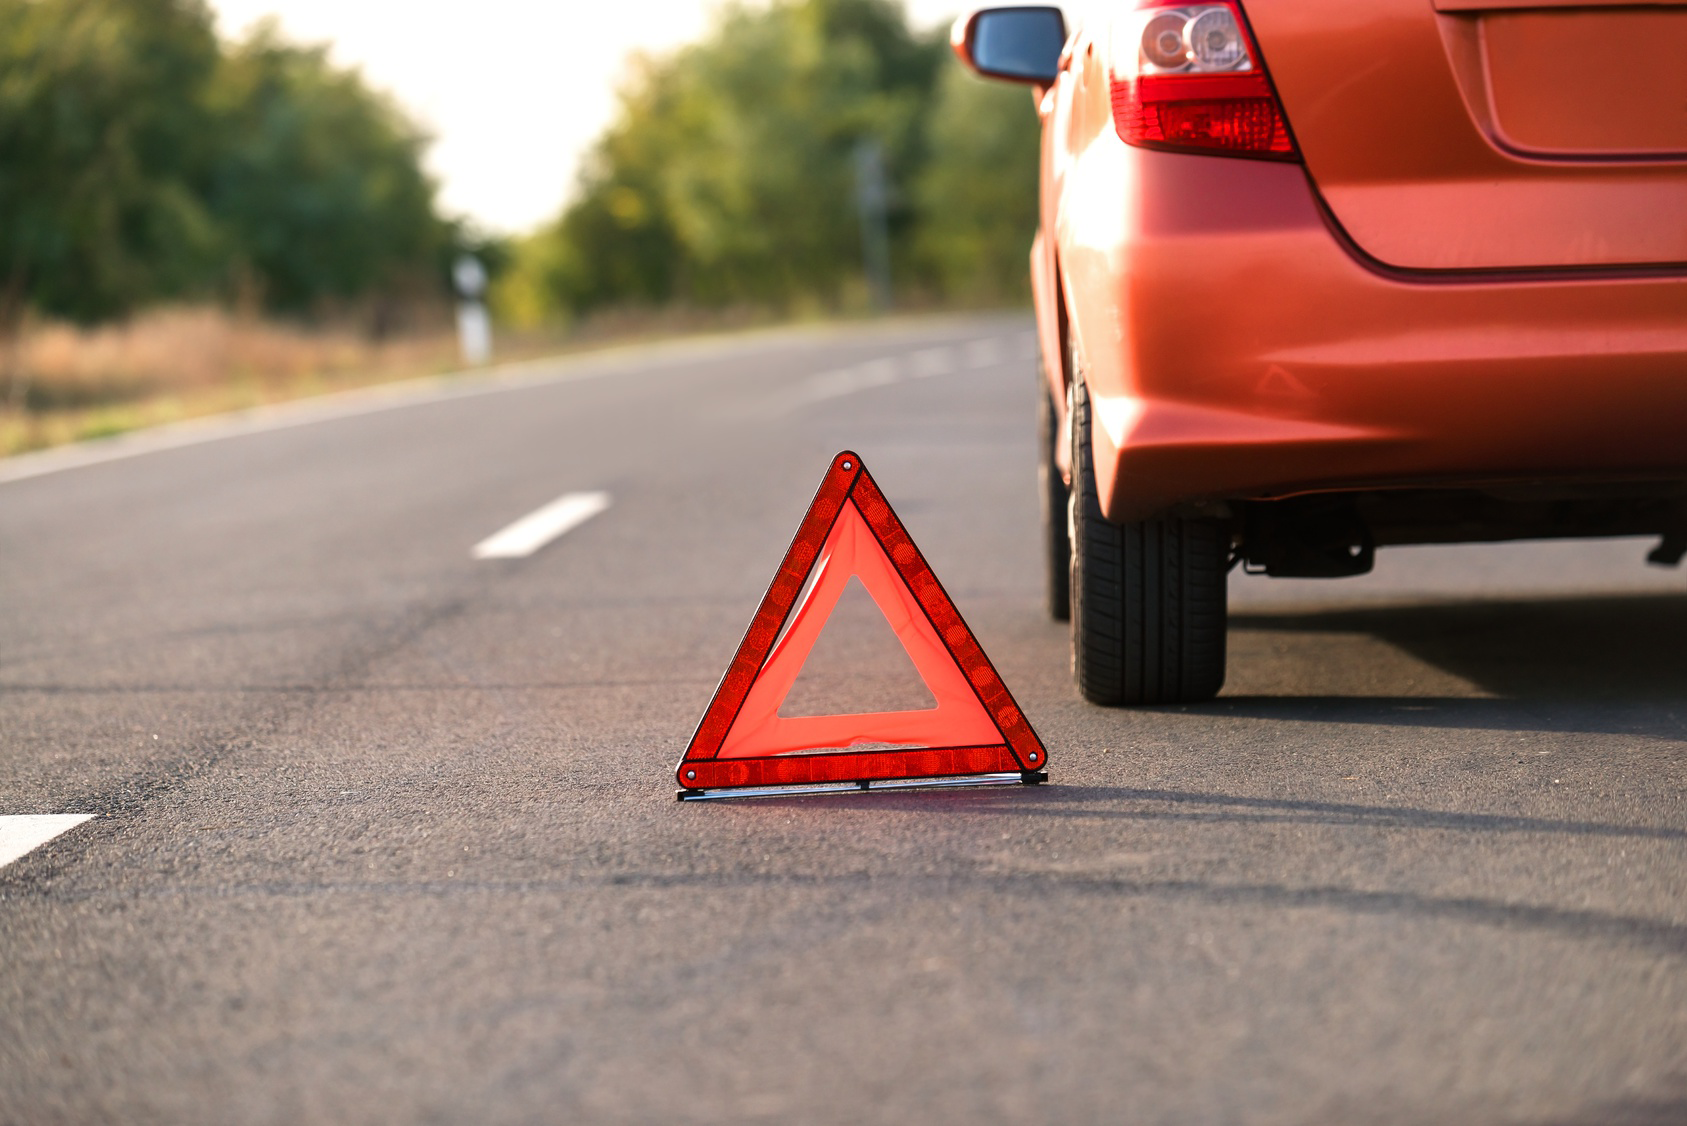 Deal With Roadside Emergencies With These Steps & Your Auto Insurance